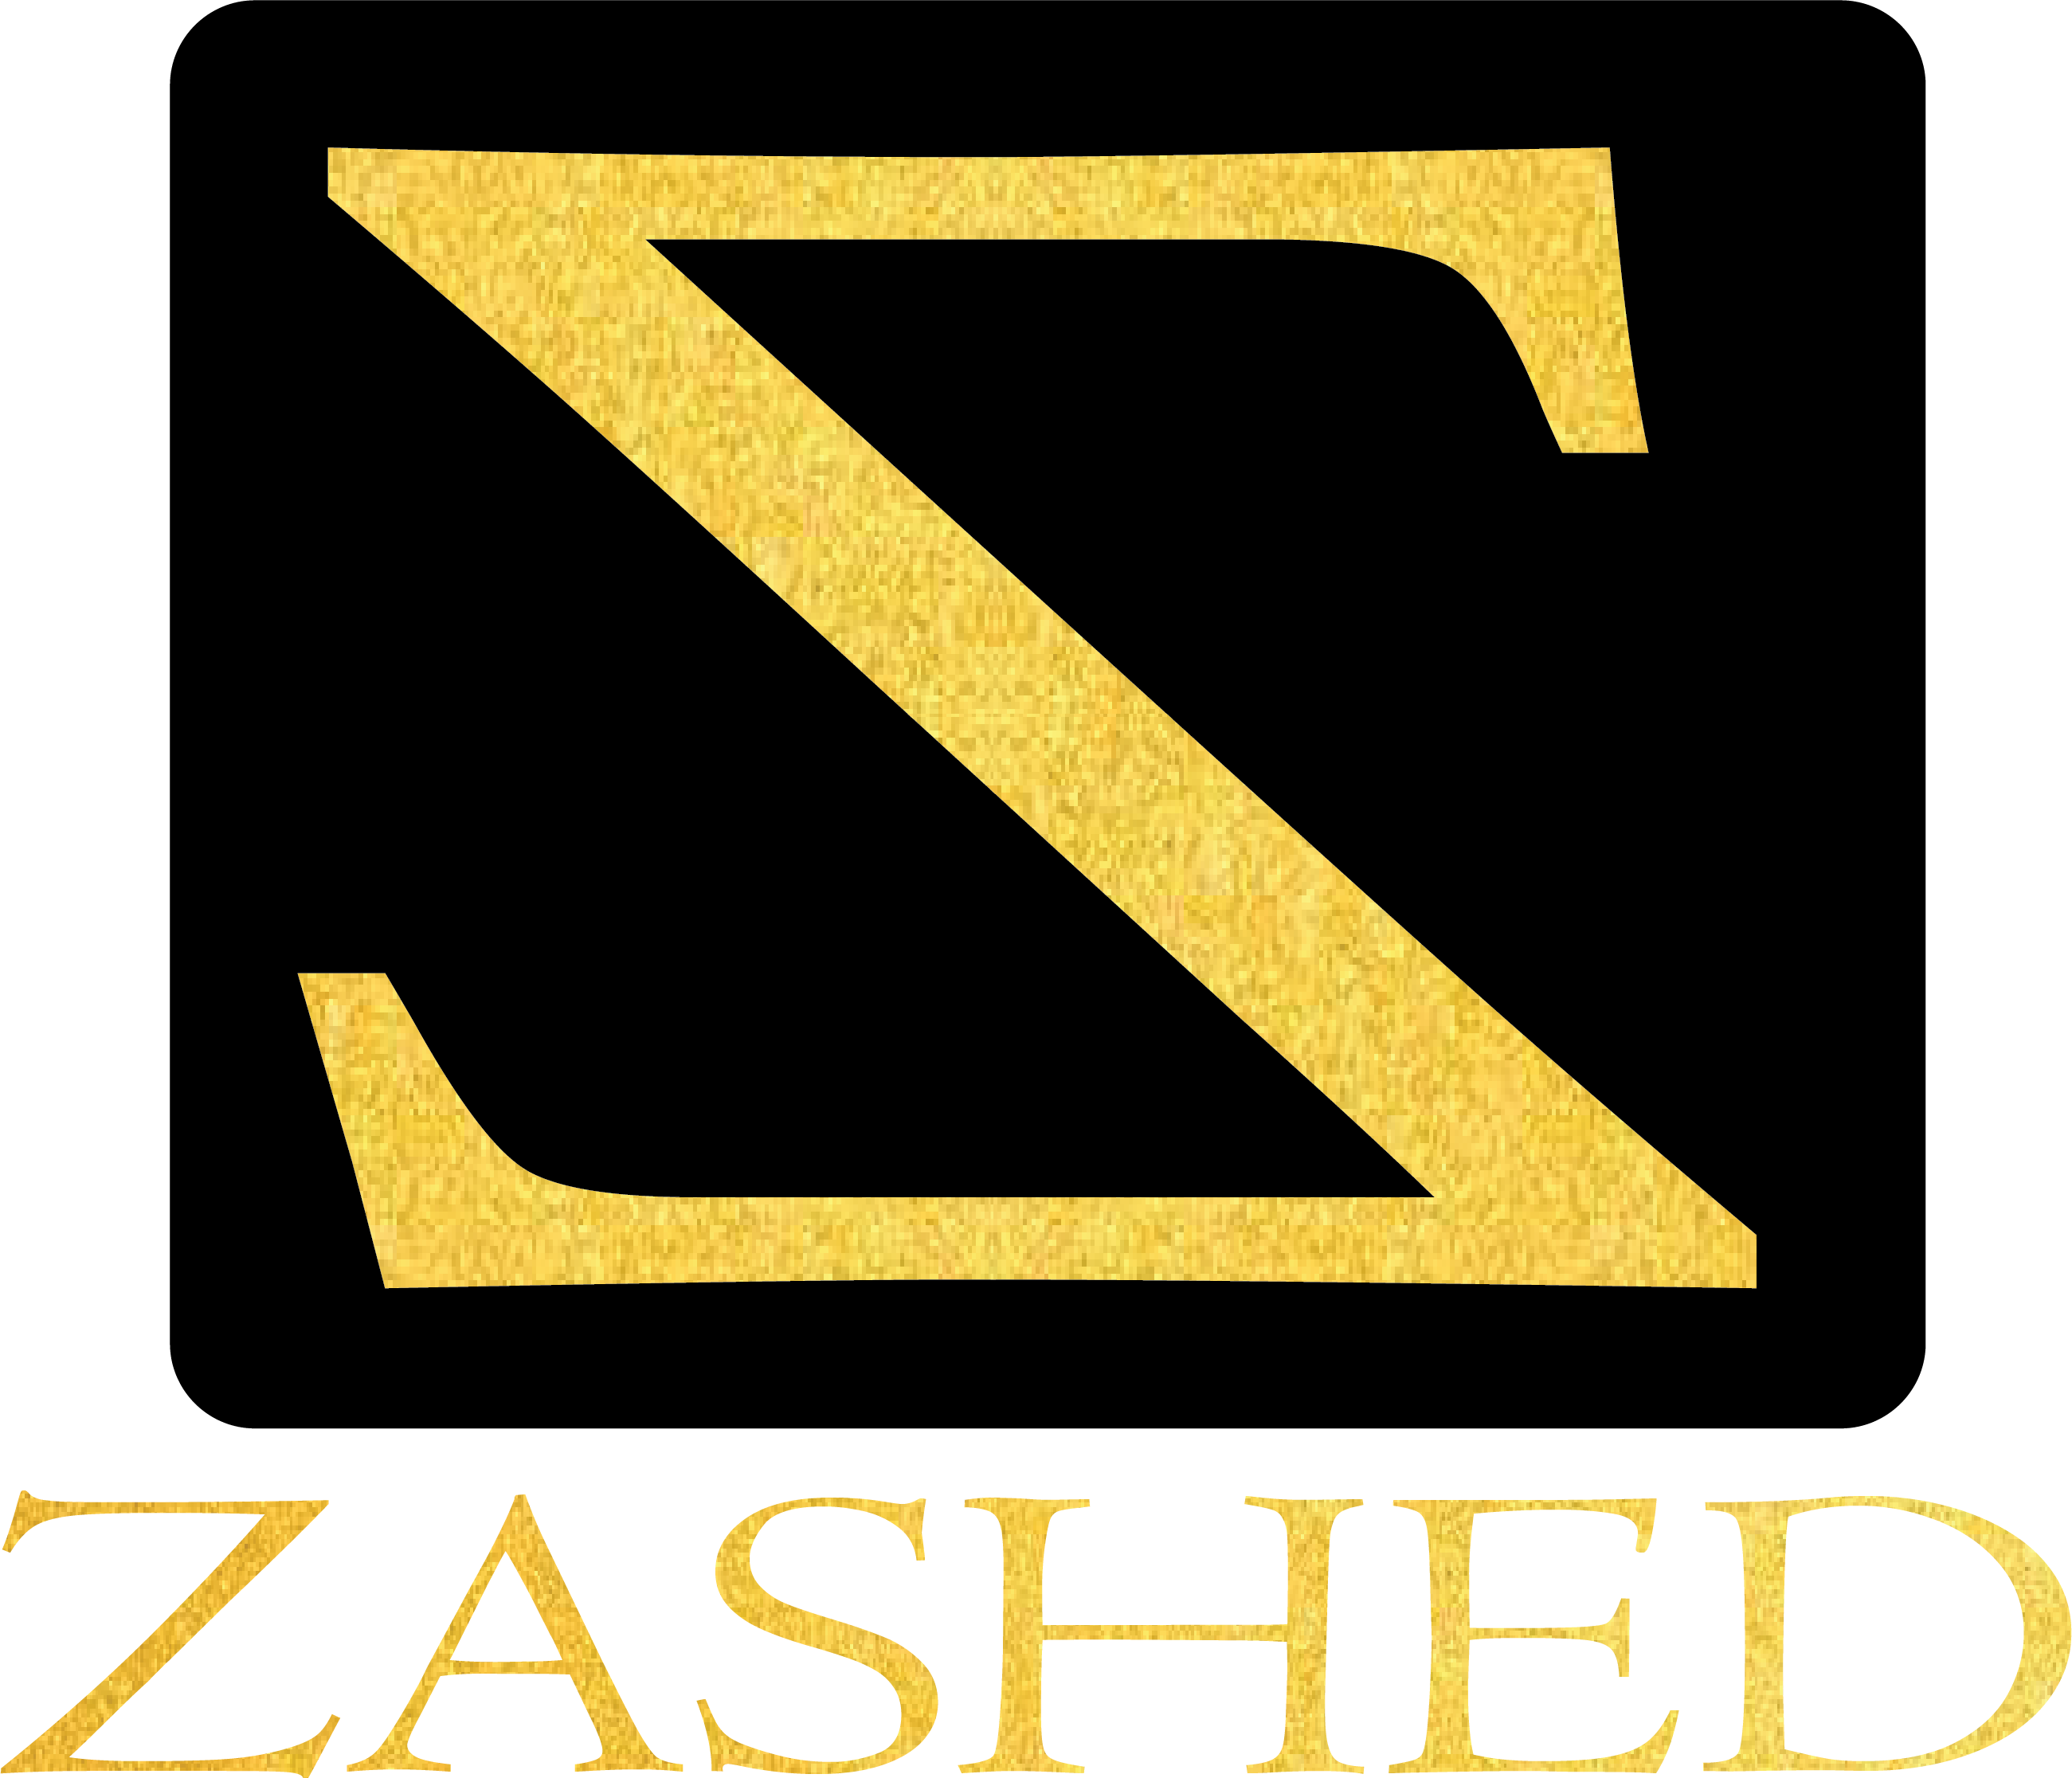 fashion-designer-delhi-Zashed-1years-3years-full-time